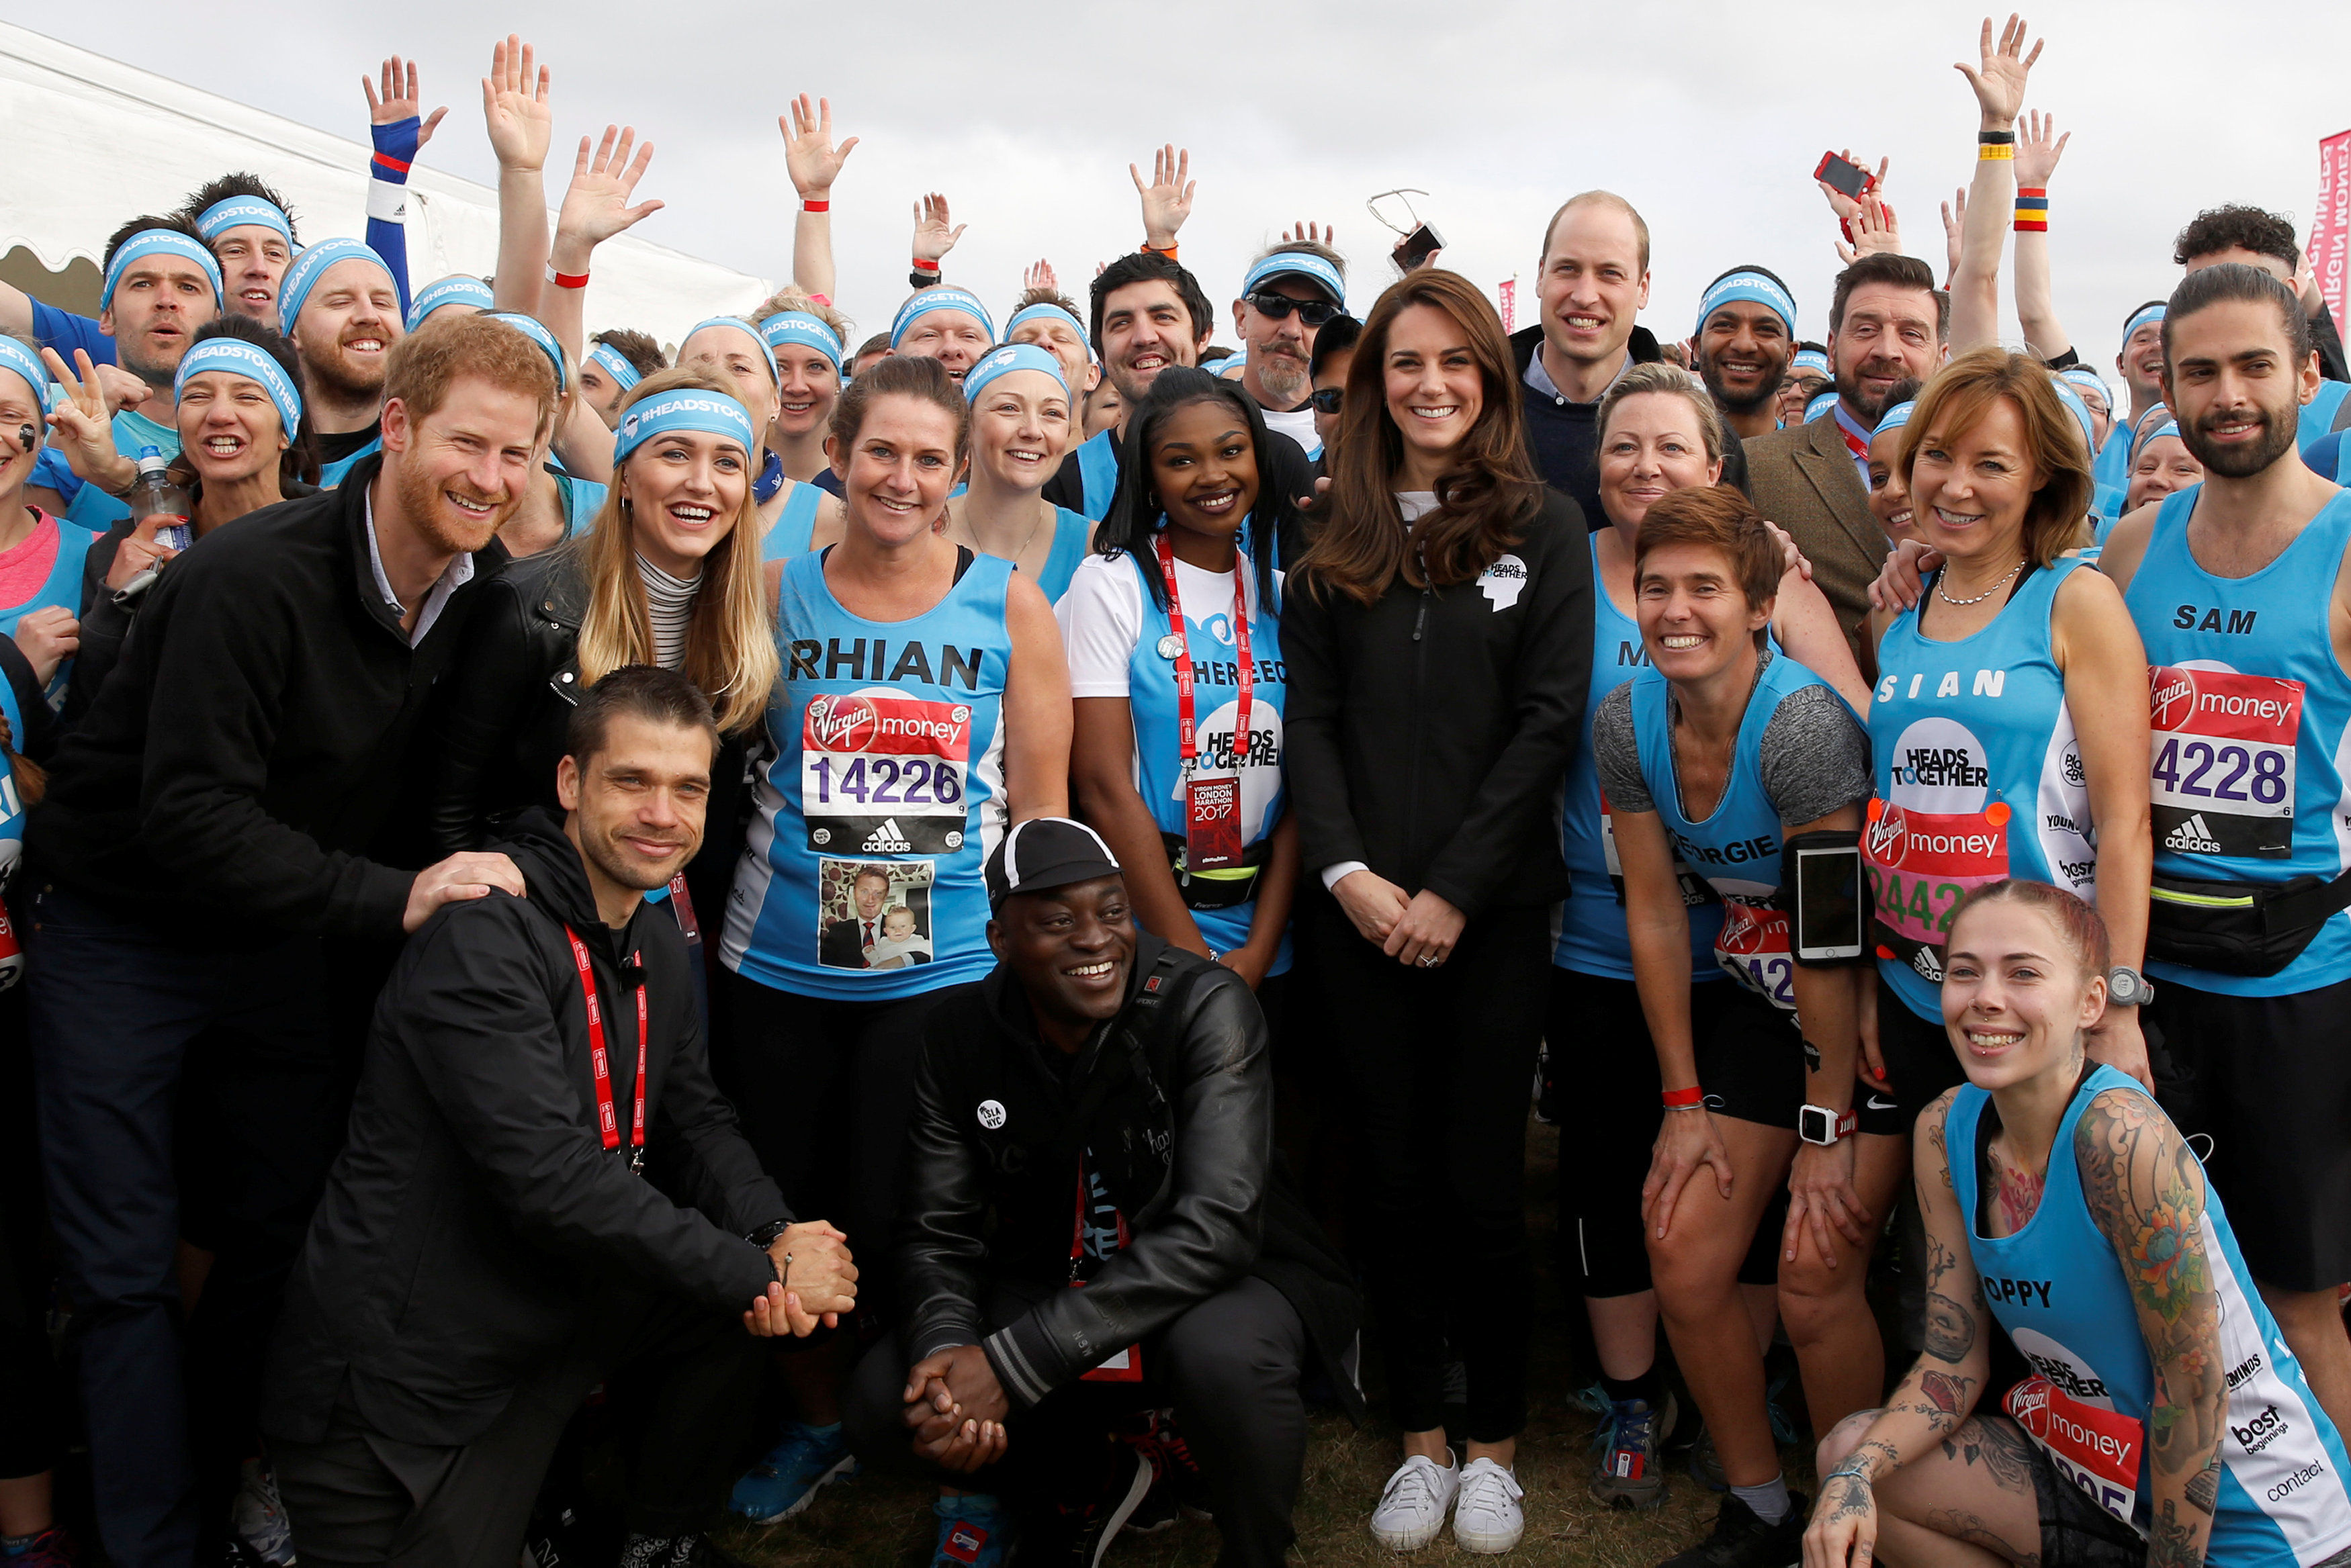 Duchess of Cambridge and Prince Harry Heads Together